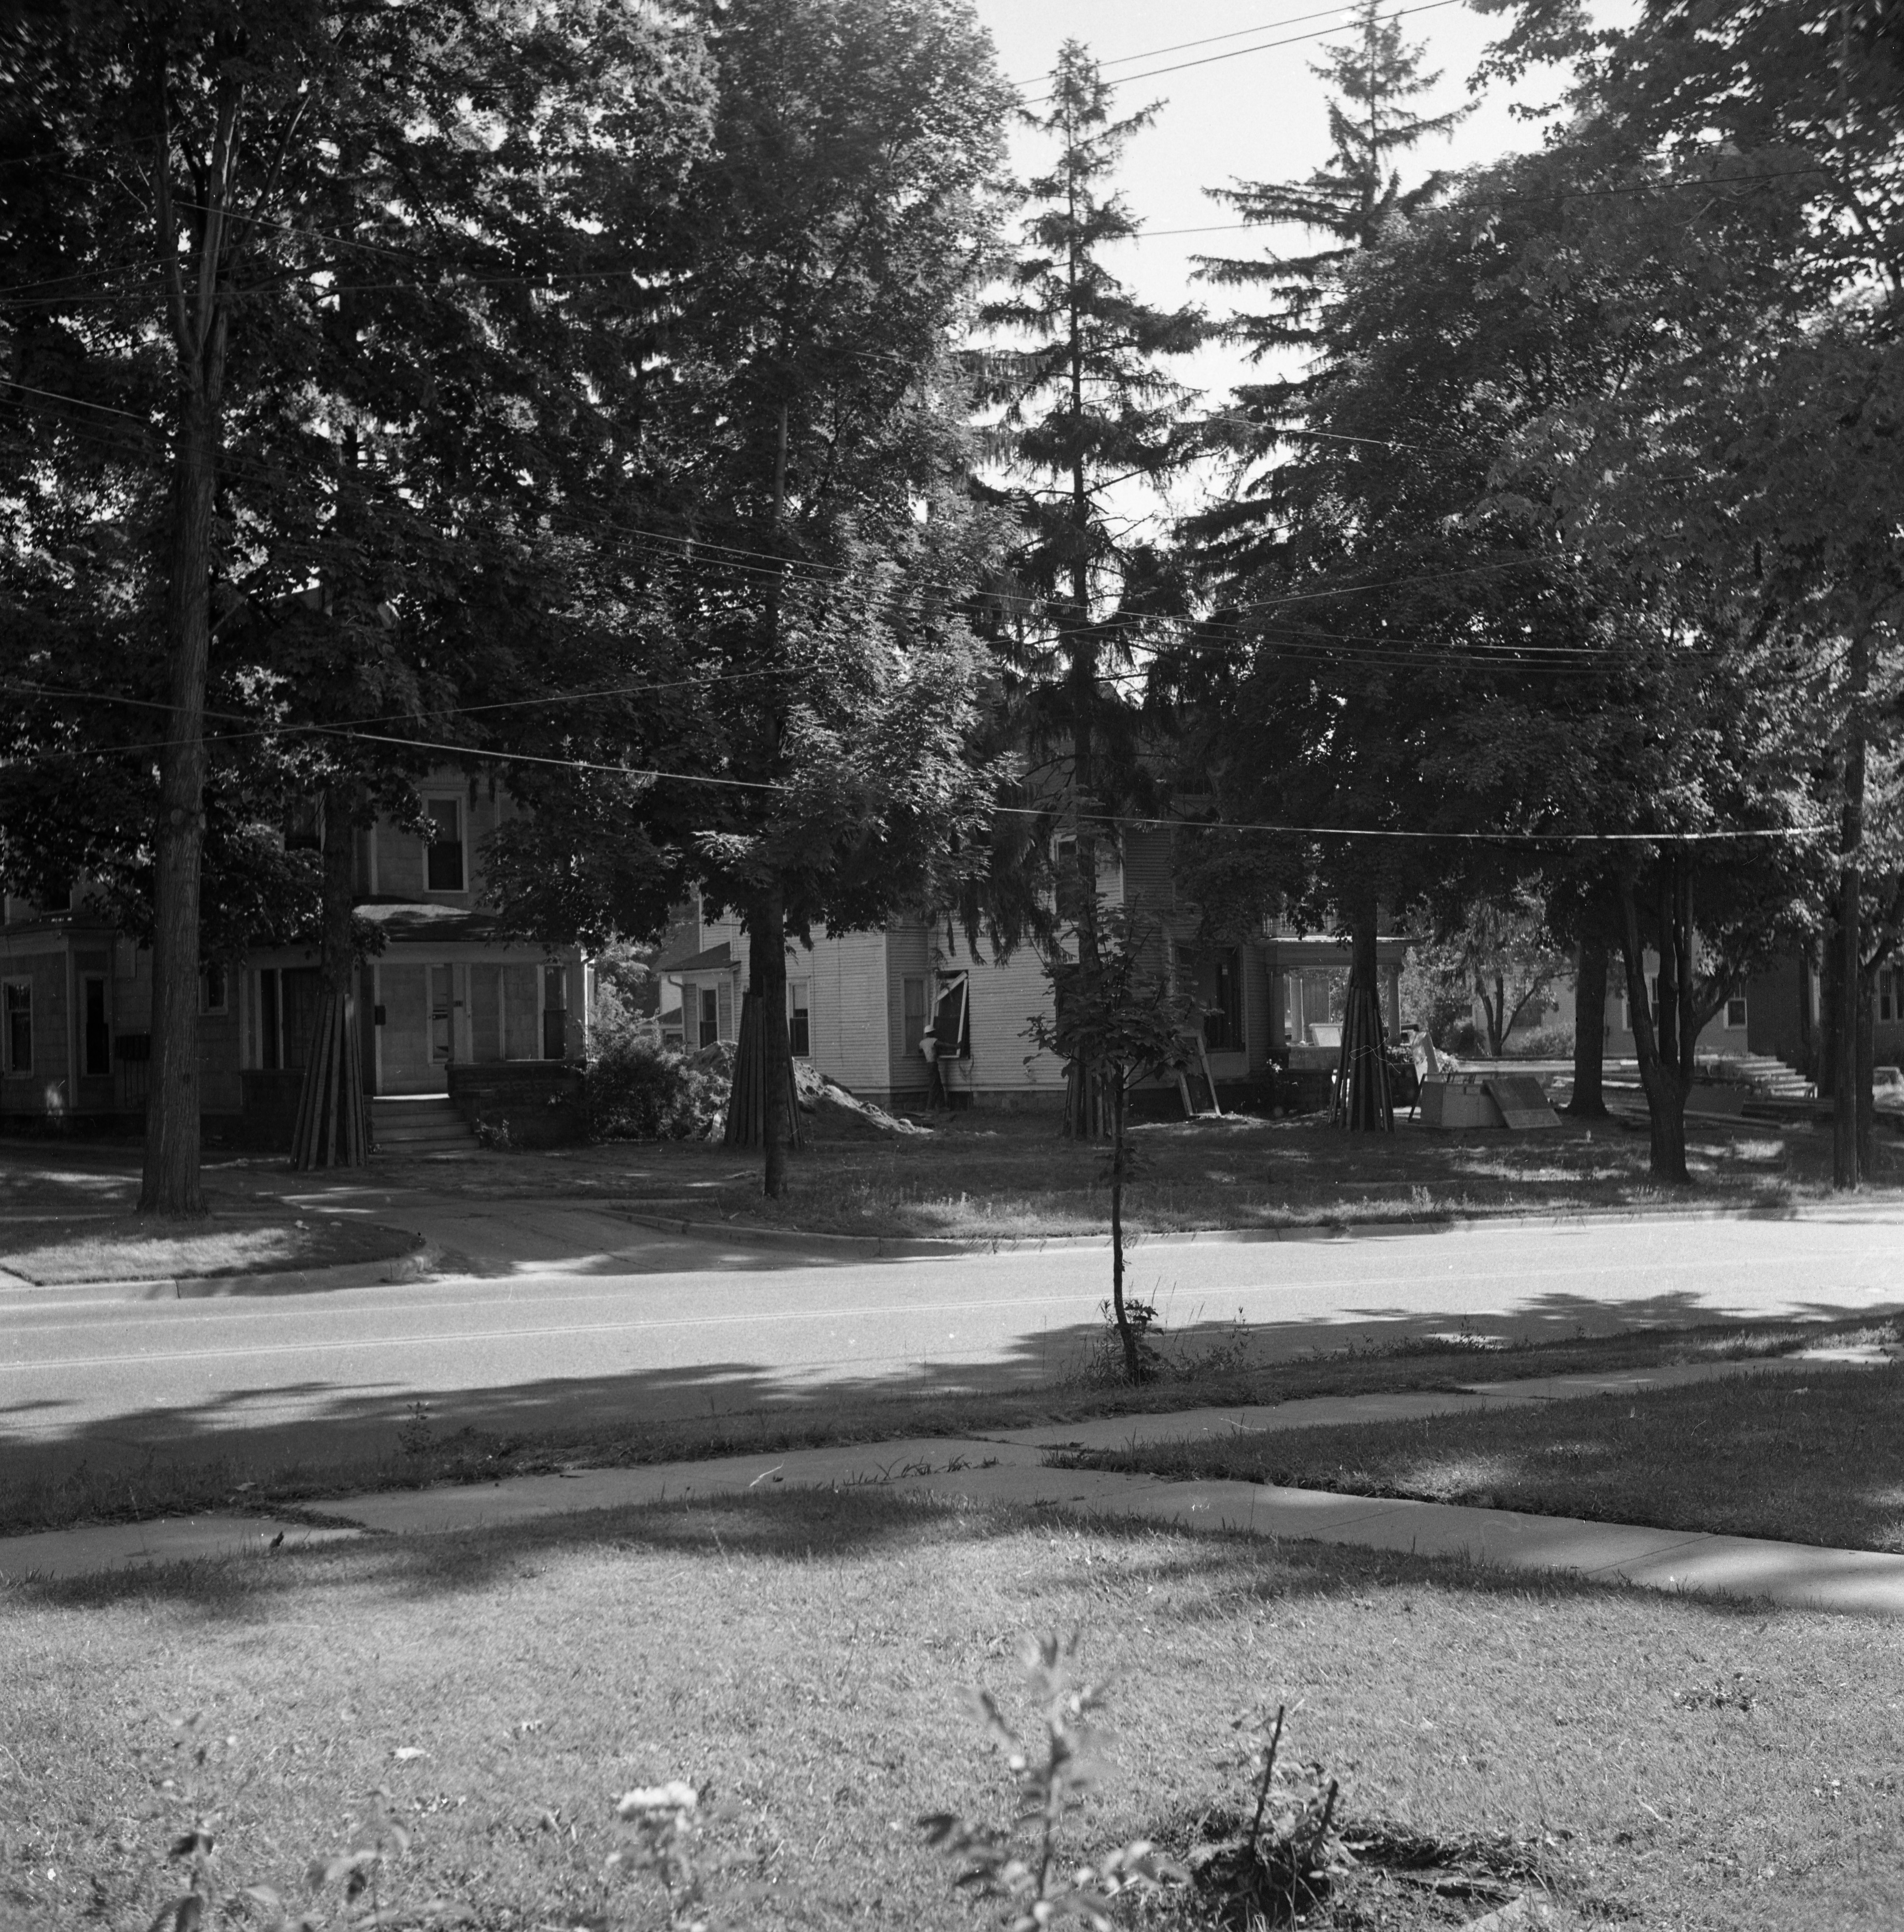 Houses Demolished To Make Way for Lurie Terrace Senior Citizens Housing Project, July 1963 image